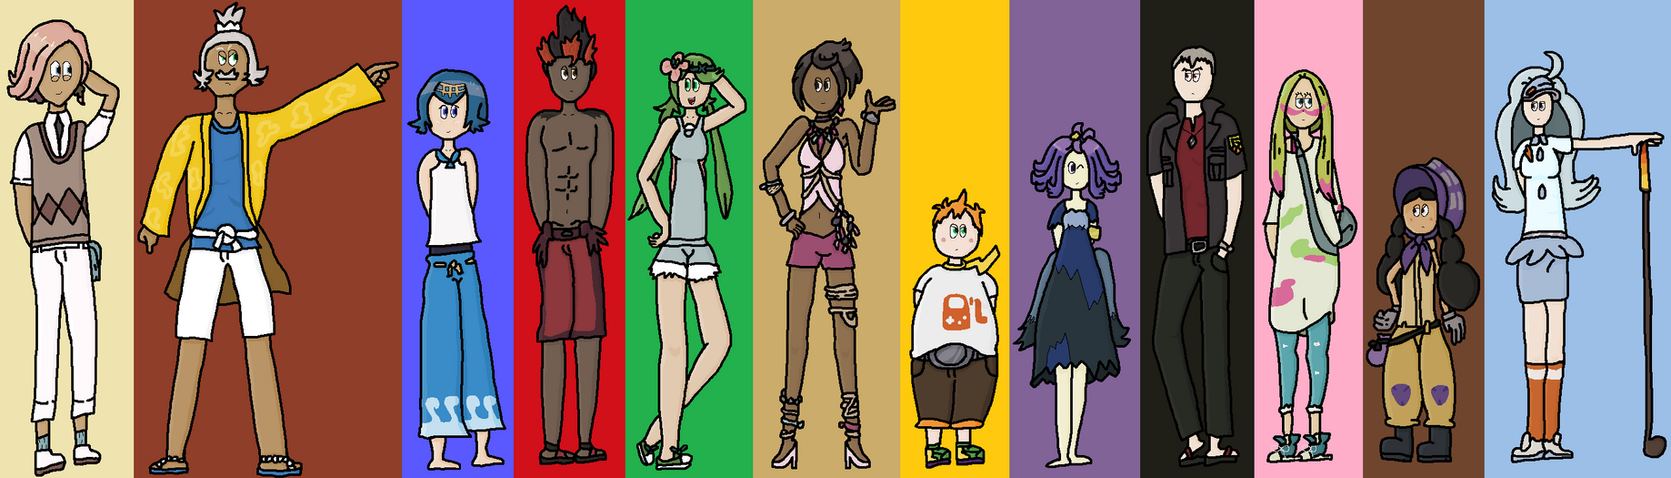 pokemon sun and moon captains and kahunas by adam p d on deviantart